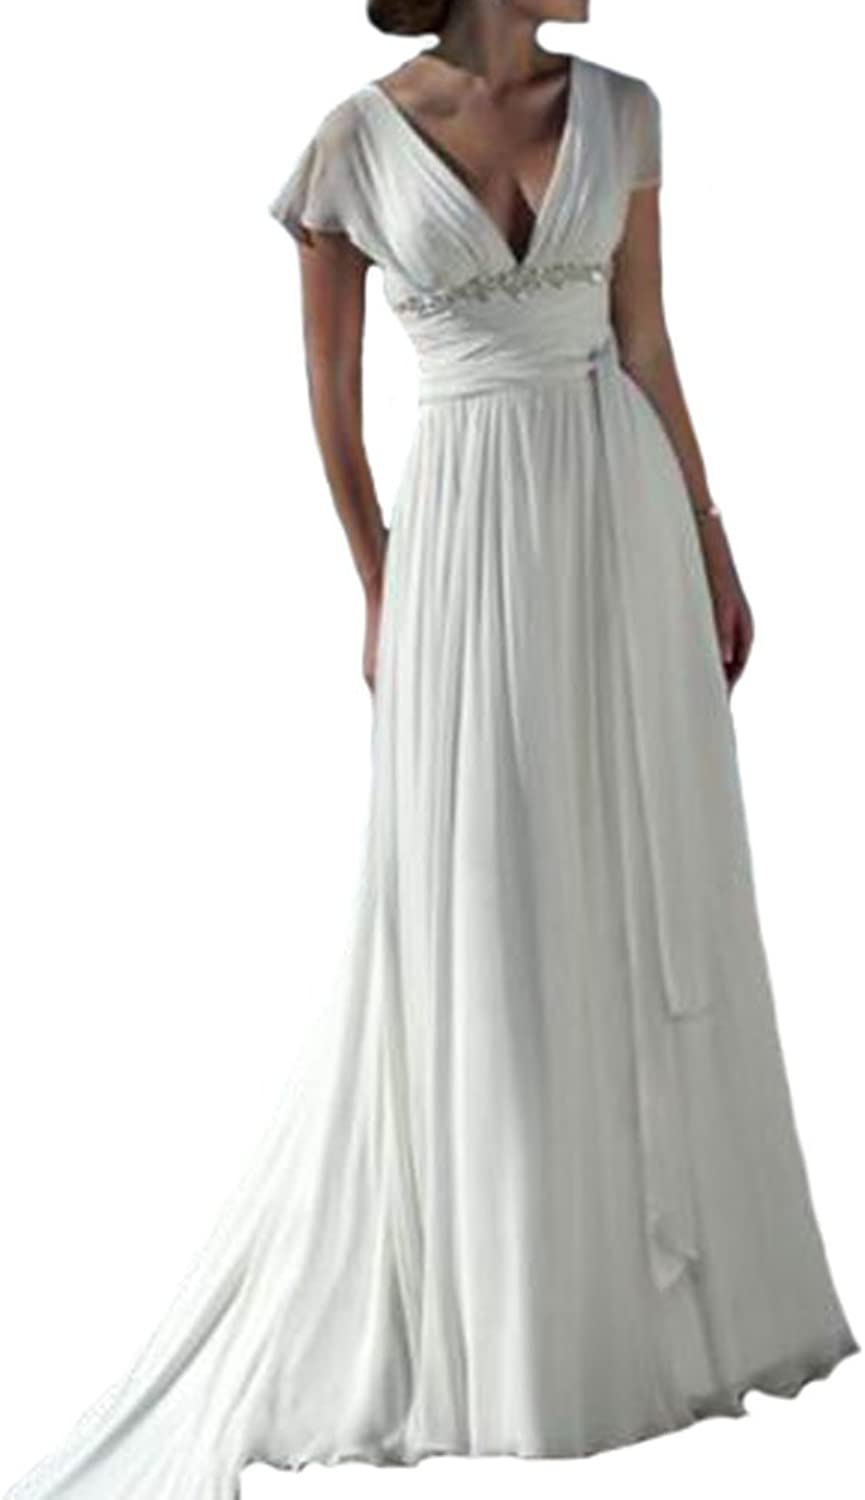 Gralre Women's Cap Sleeves Long Beach Wedding Dresses Double V Neck Bridal Gowns